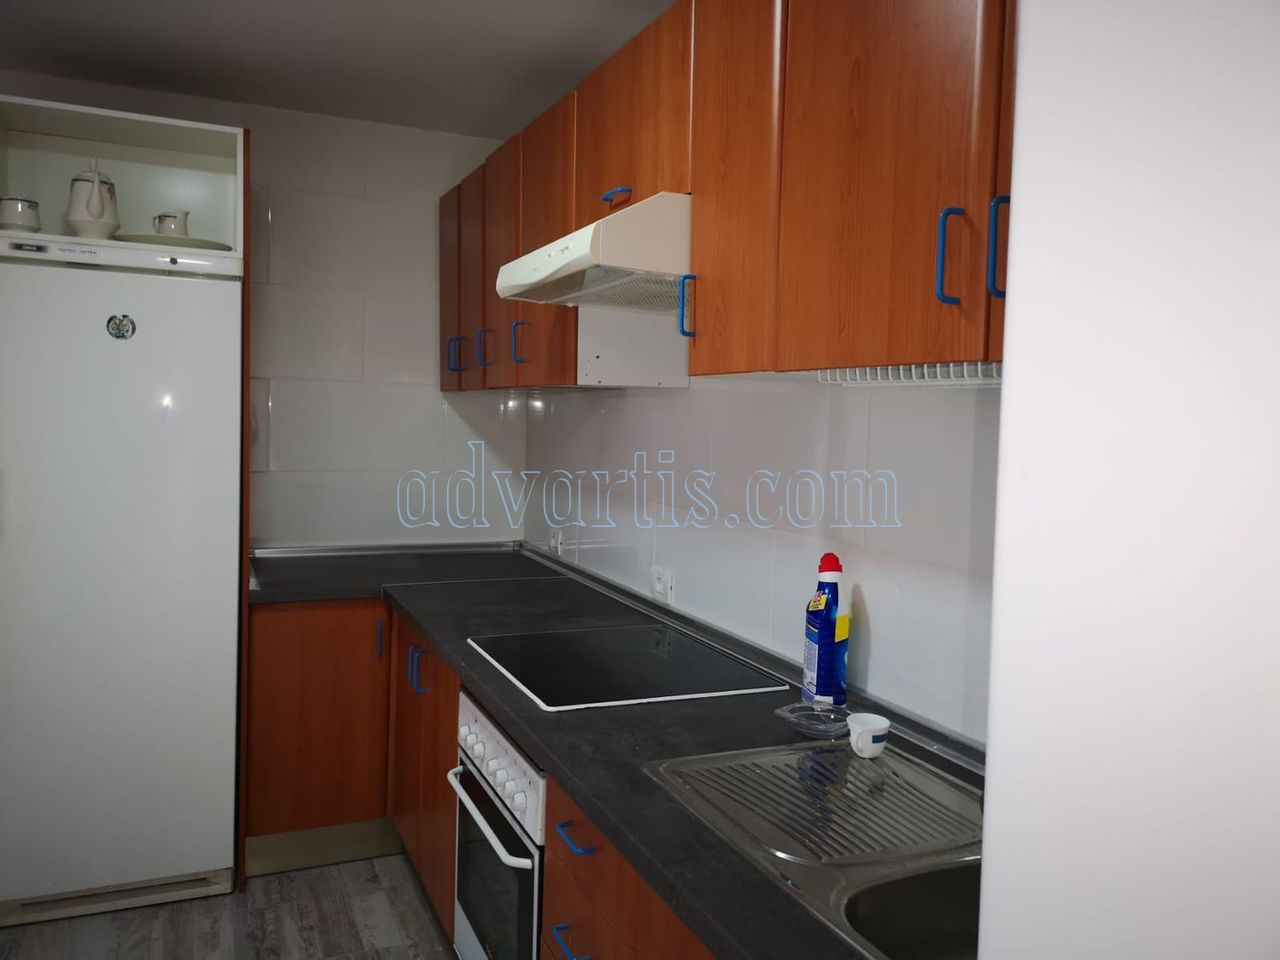 Spacious 4 bedroom apartment for sale in Adeje, Tenerife